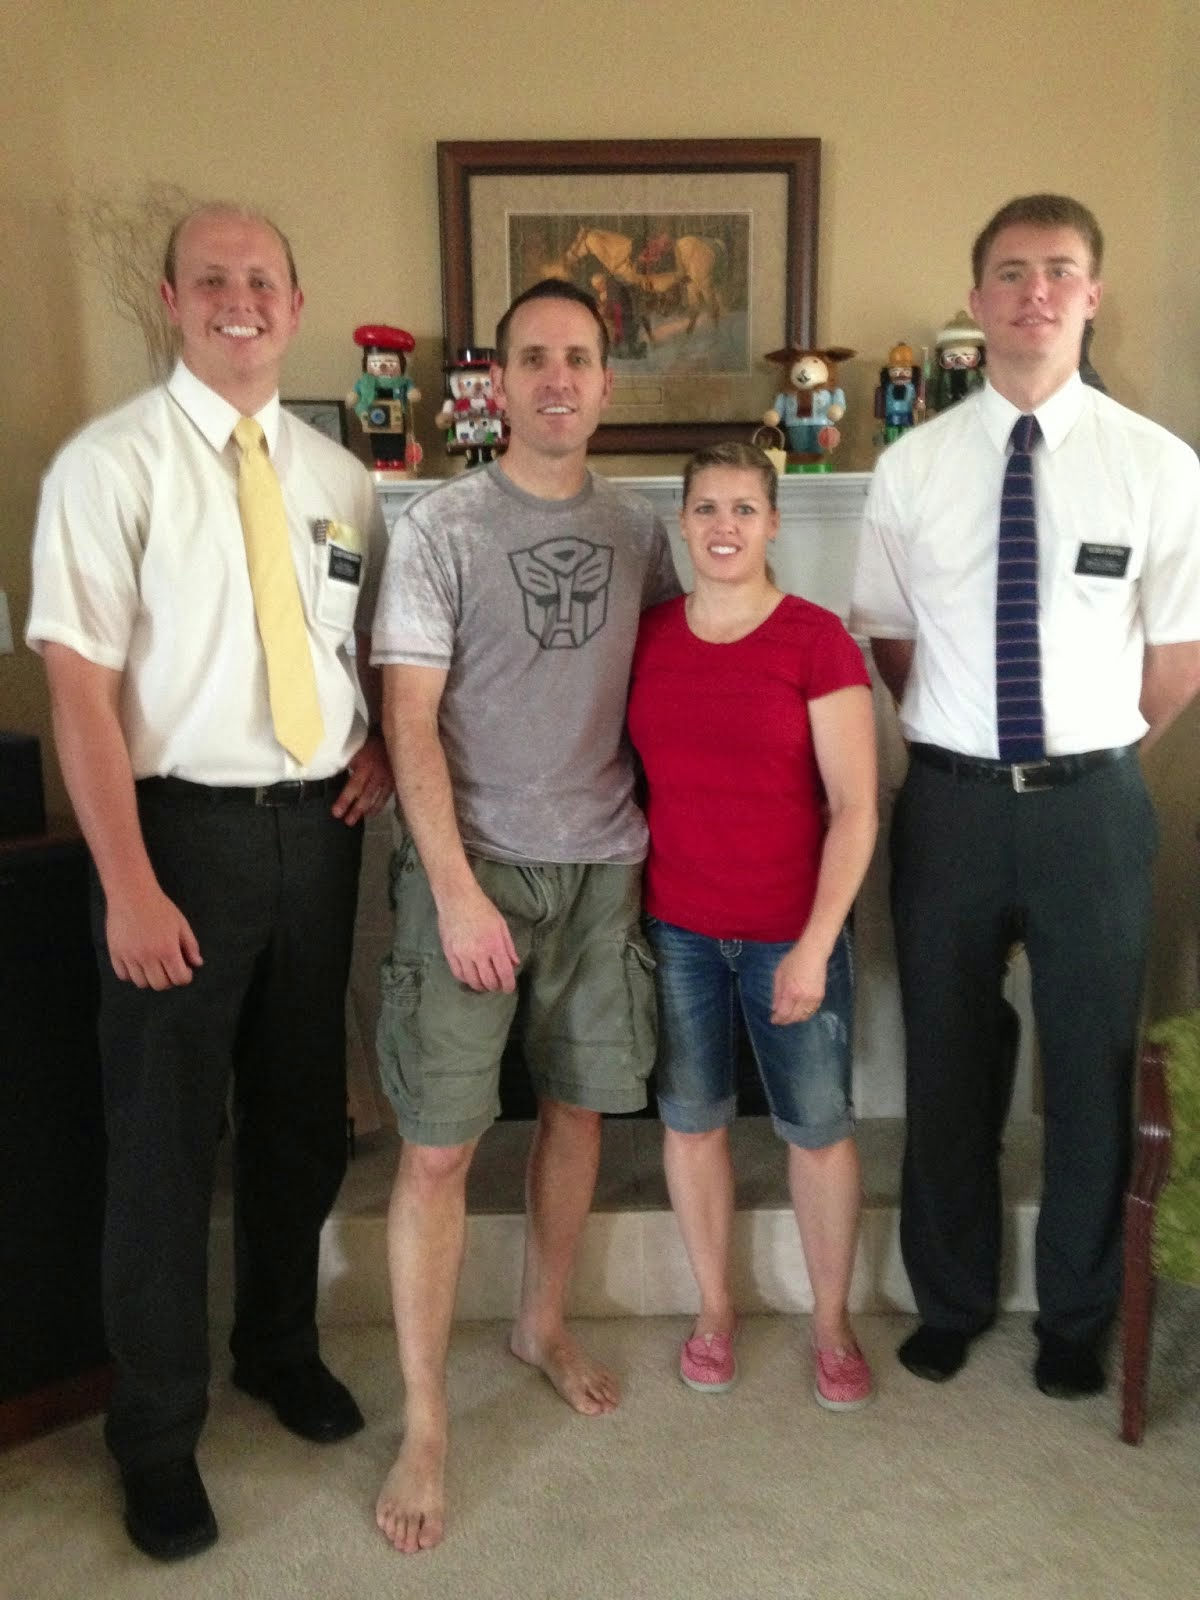 Elder Rasmussen & Elder Foster with the Burbidge Family